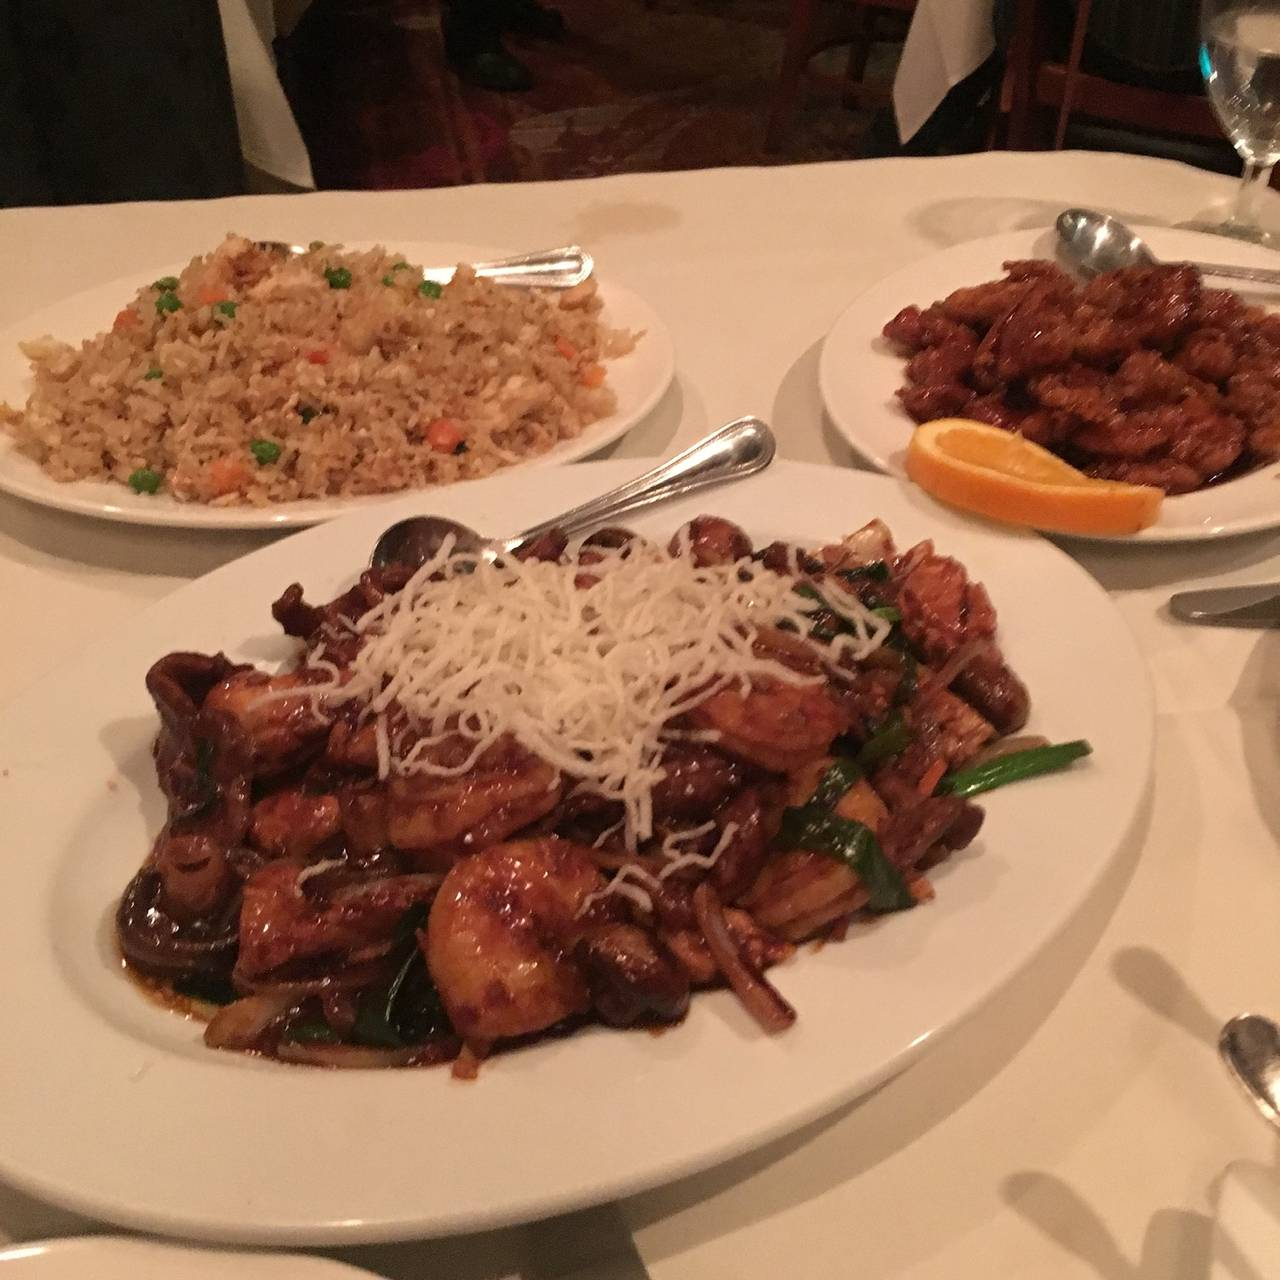 Incredible Four Winds An Asian Restaurant Bossier City La Opentable Interior Design Ideas Ghosoteloinfo